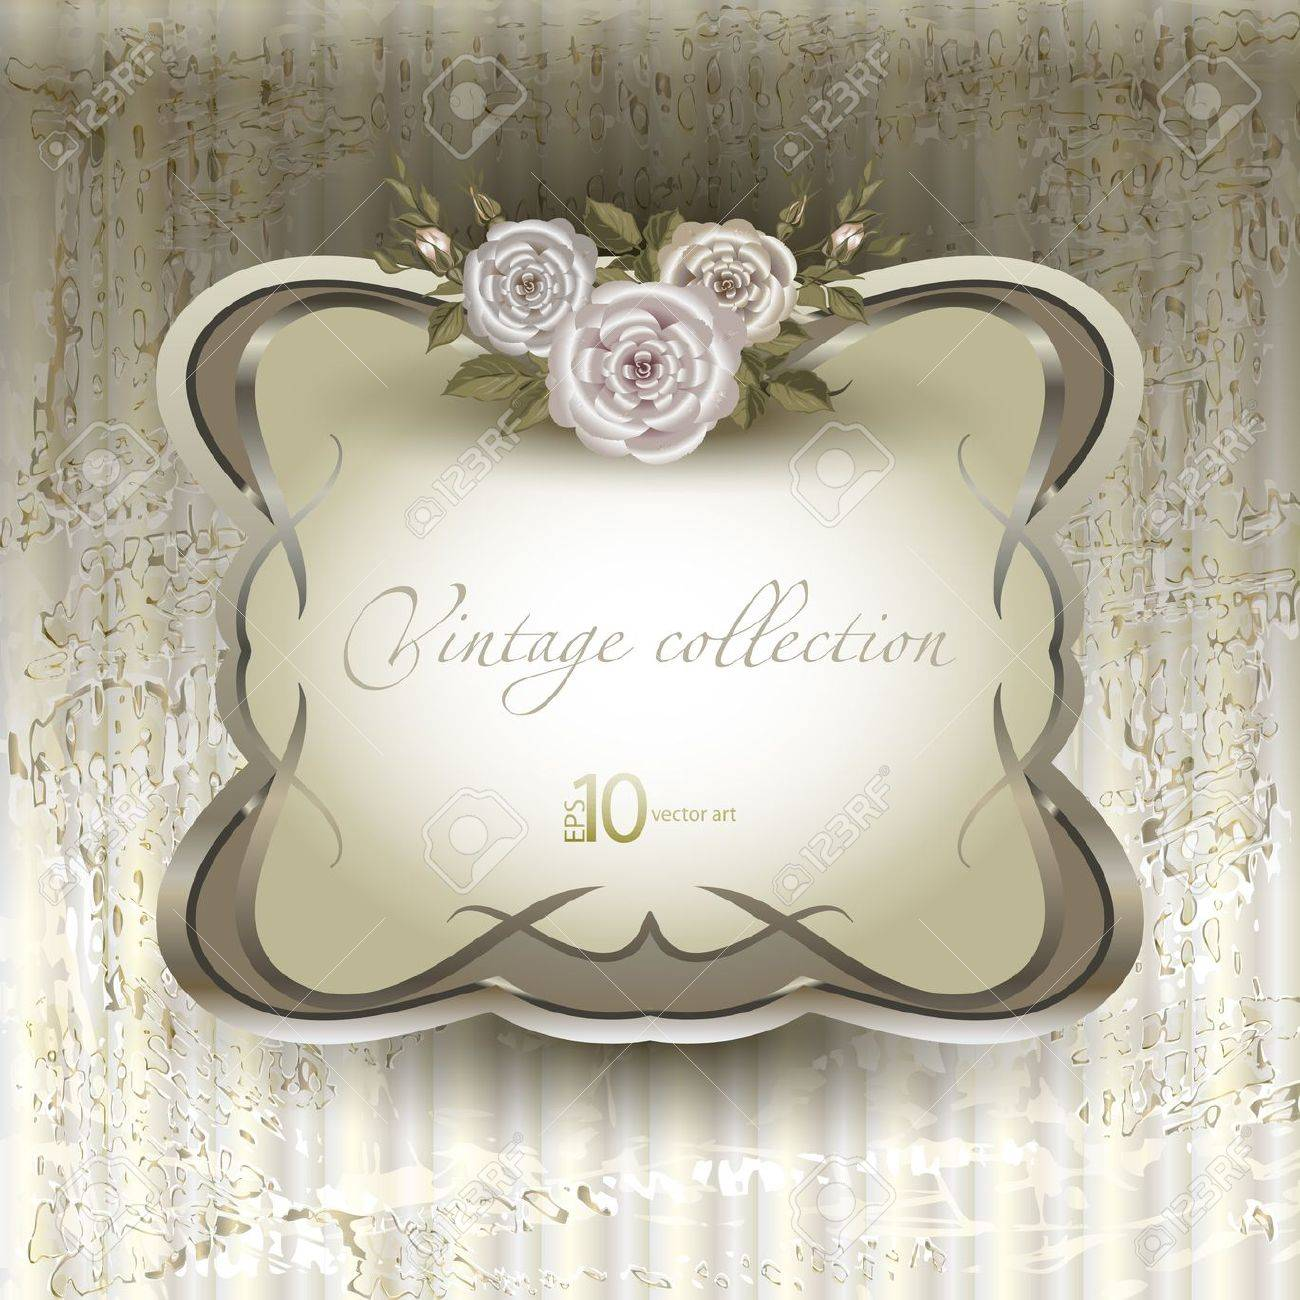 vector vintage a retro a vignette with roses Stock Vector - 14702831